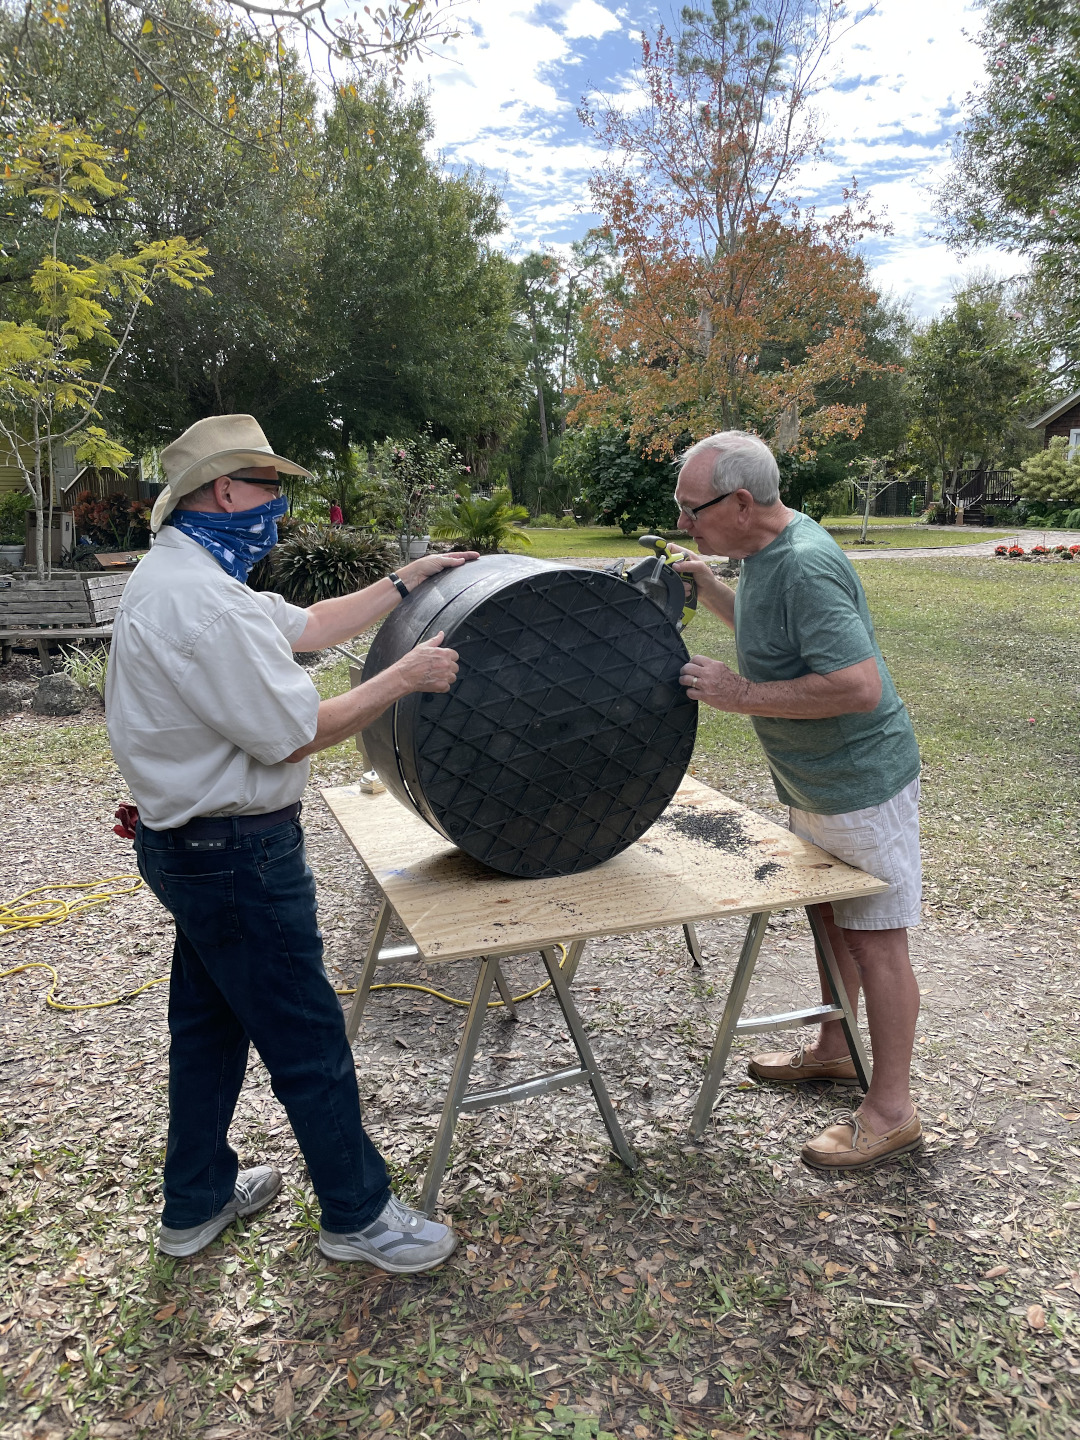 Two men slicing a plastic barrel into rings